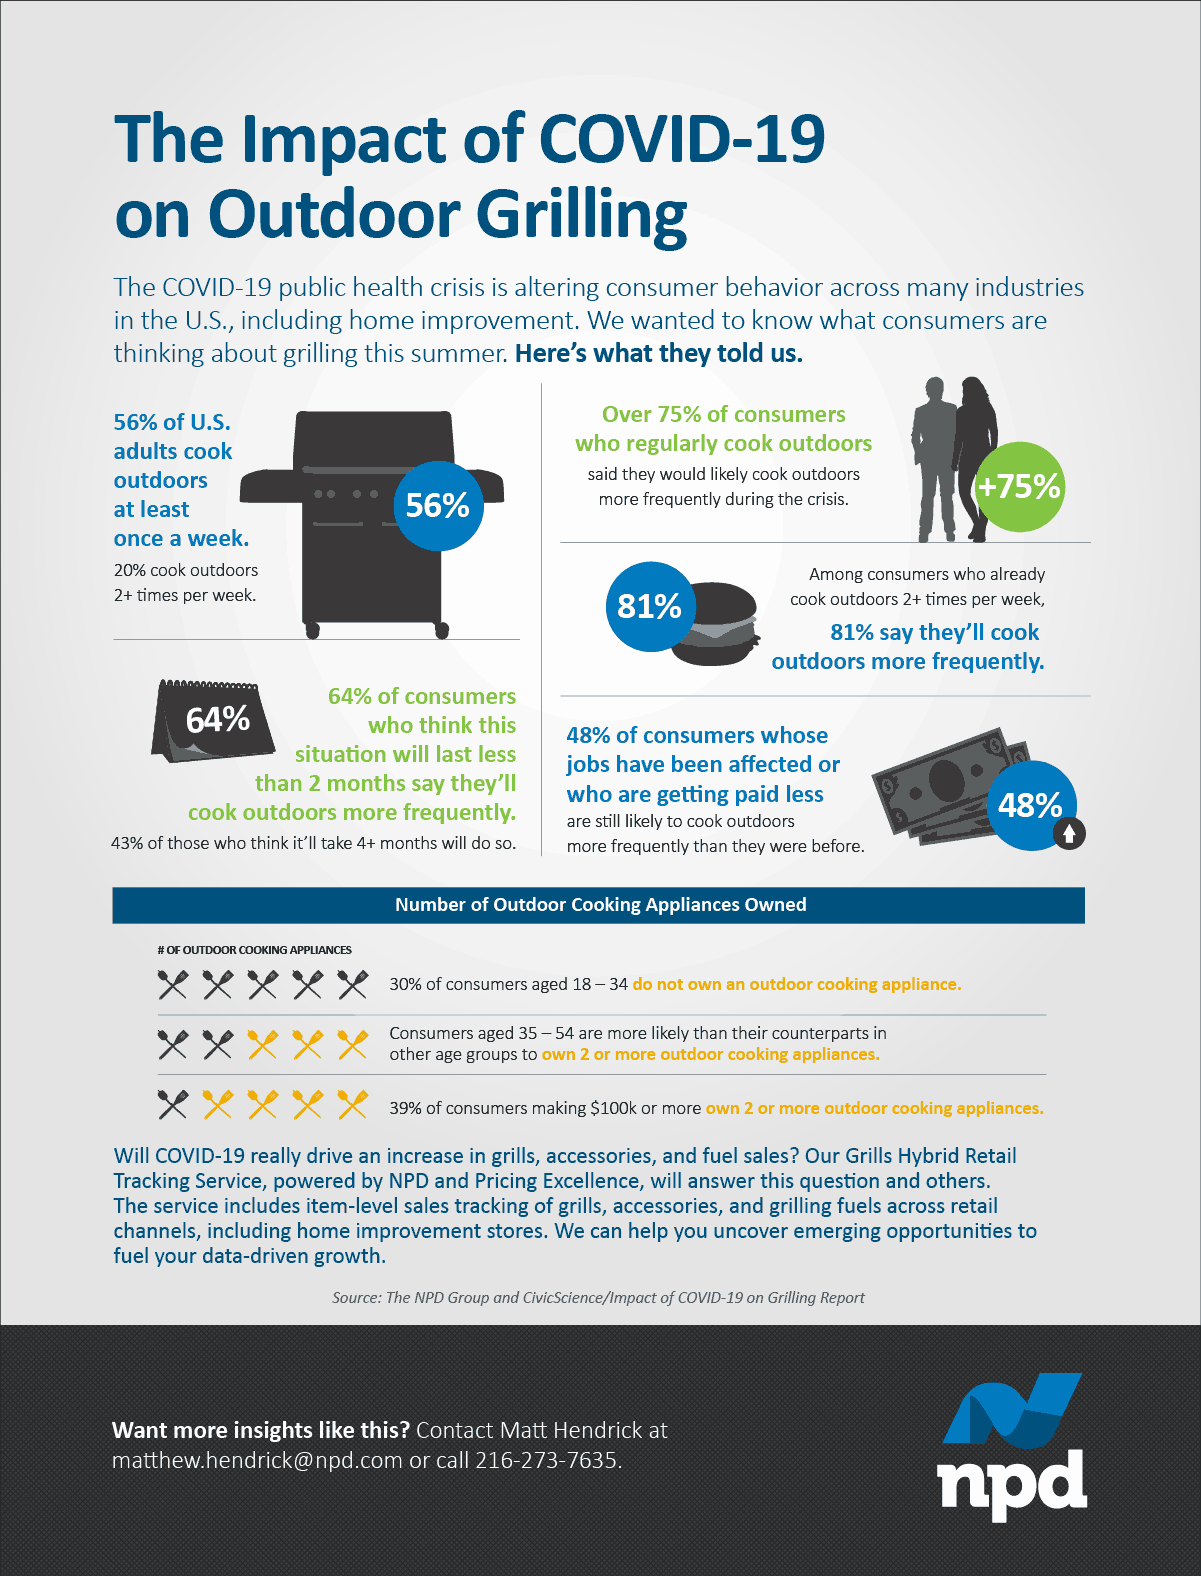 The COVID-19 public health crisis is altering consumer behavior across many industries in the U.S., including home improvement. We wanted to know what consumers are thinking about grilling this summer.